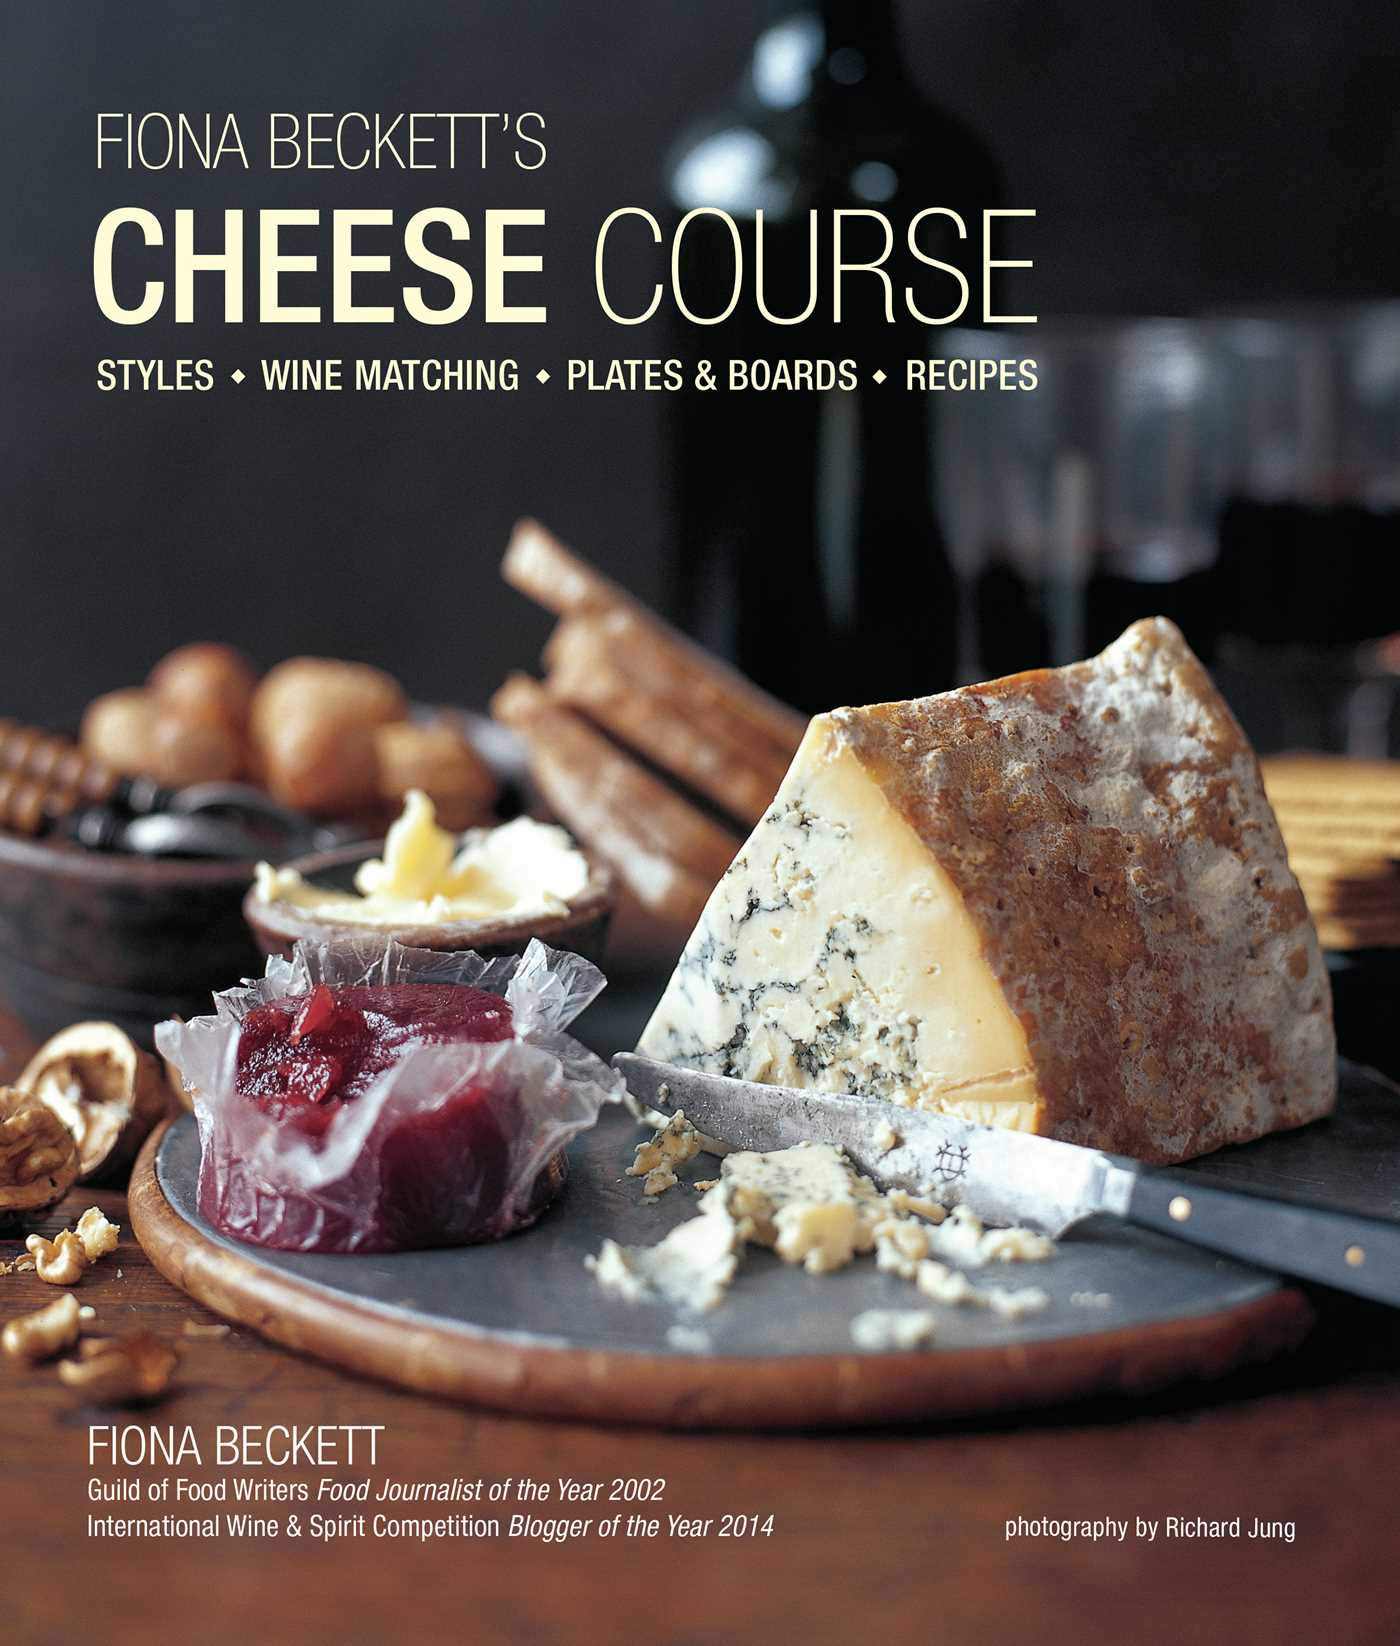 Fiona becketts cheese course 9781849756877 hr